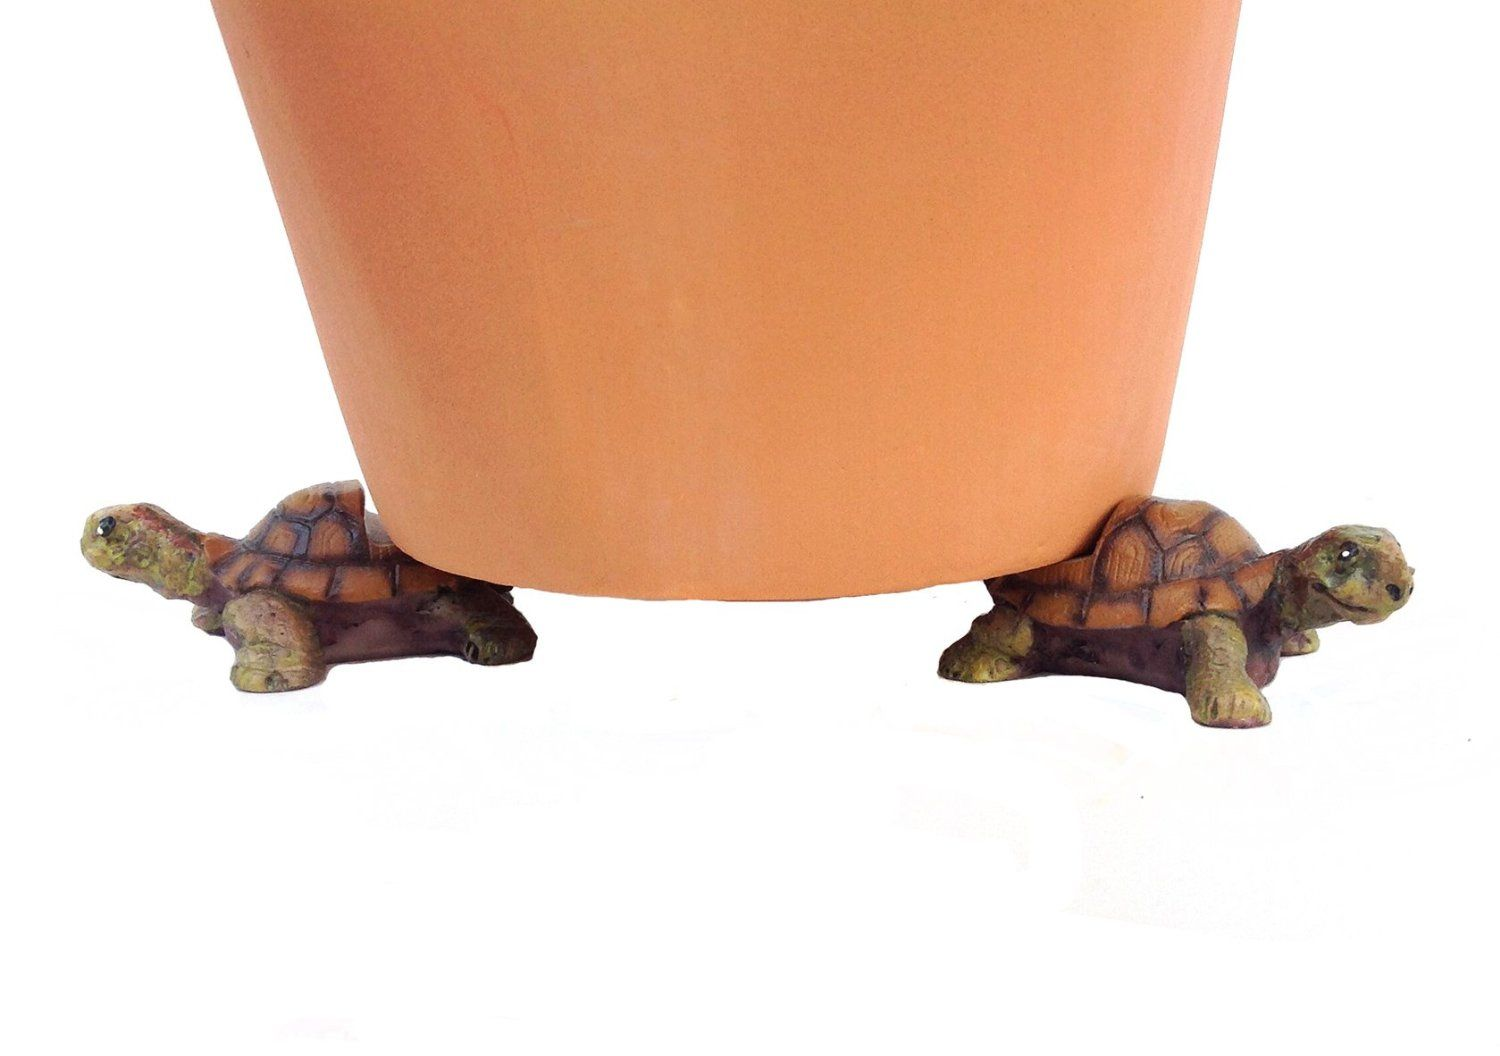 Animal Shape Plant Riser Feet Fun Animal Shapes To Life Container Garden Pots Off A Wooden Deck Or Patio Floor Prom Small Turtles Planters Decorative Planters